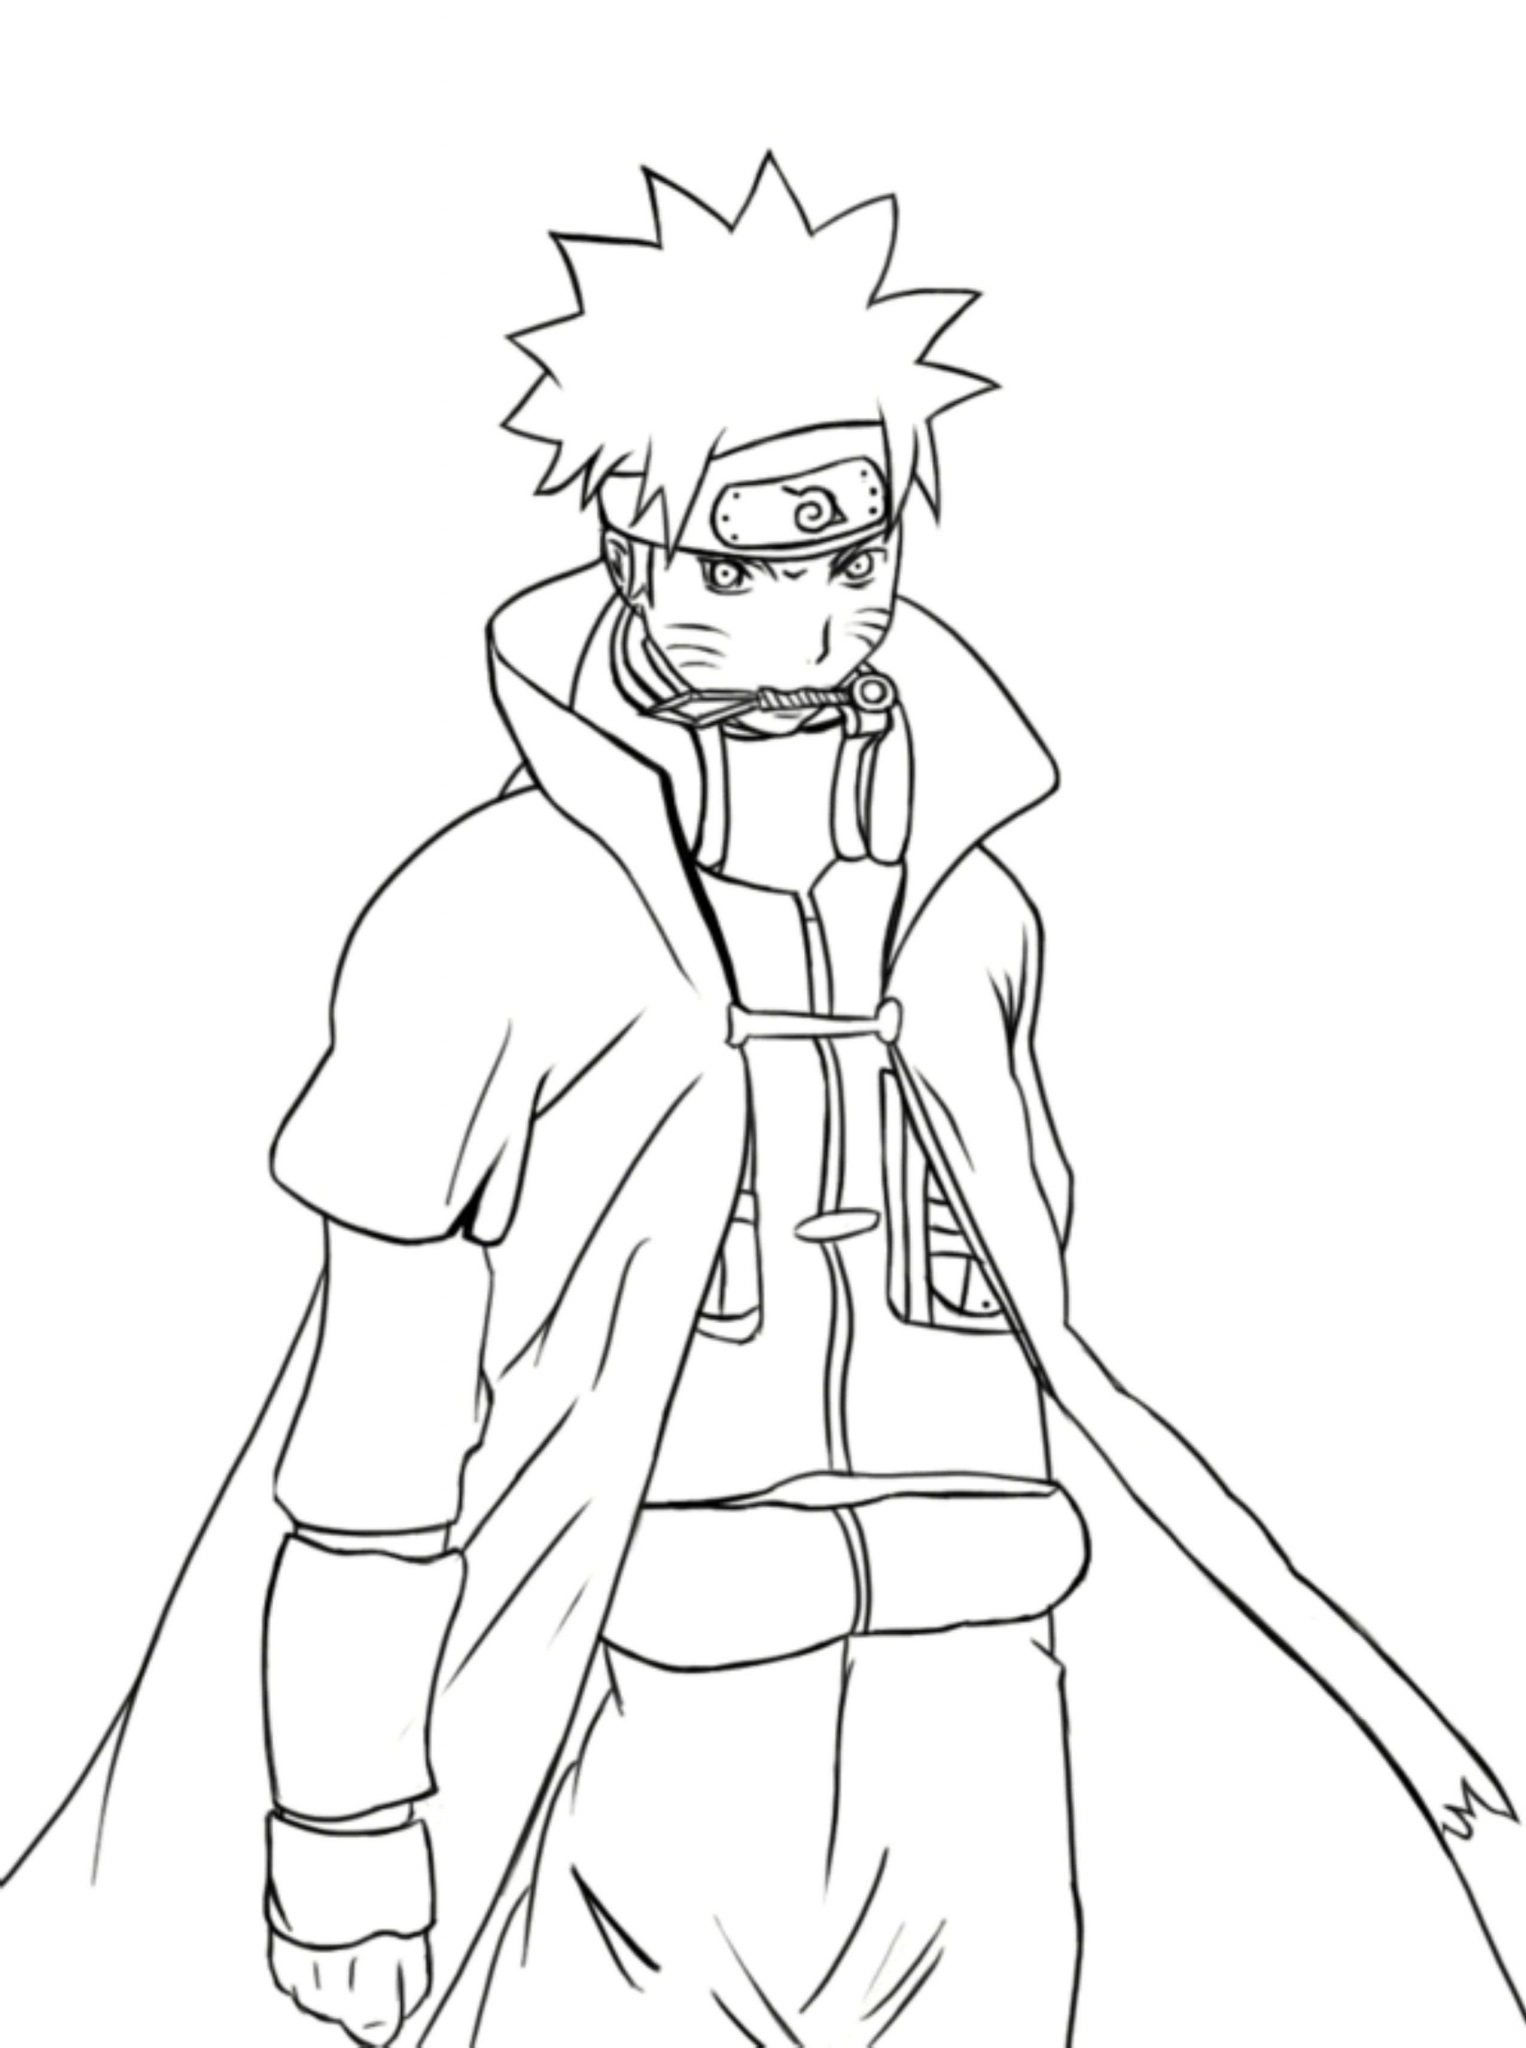 F E B Dc Aca Eba Df together with Educational Ruler Coloring Pages additionally Igld G likewise Emu Birds Coloring Pages further F Fe B Cf B B D B. on naruto shippuden math